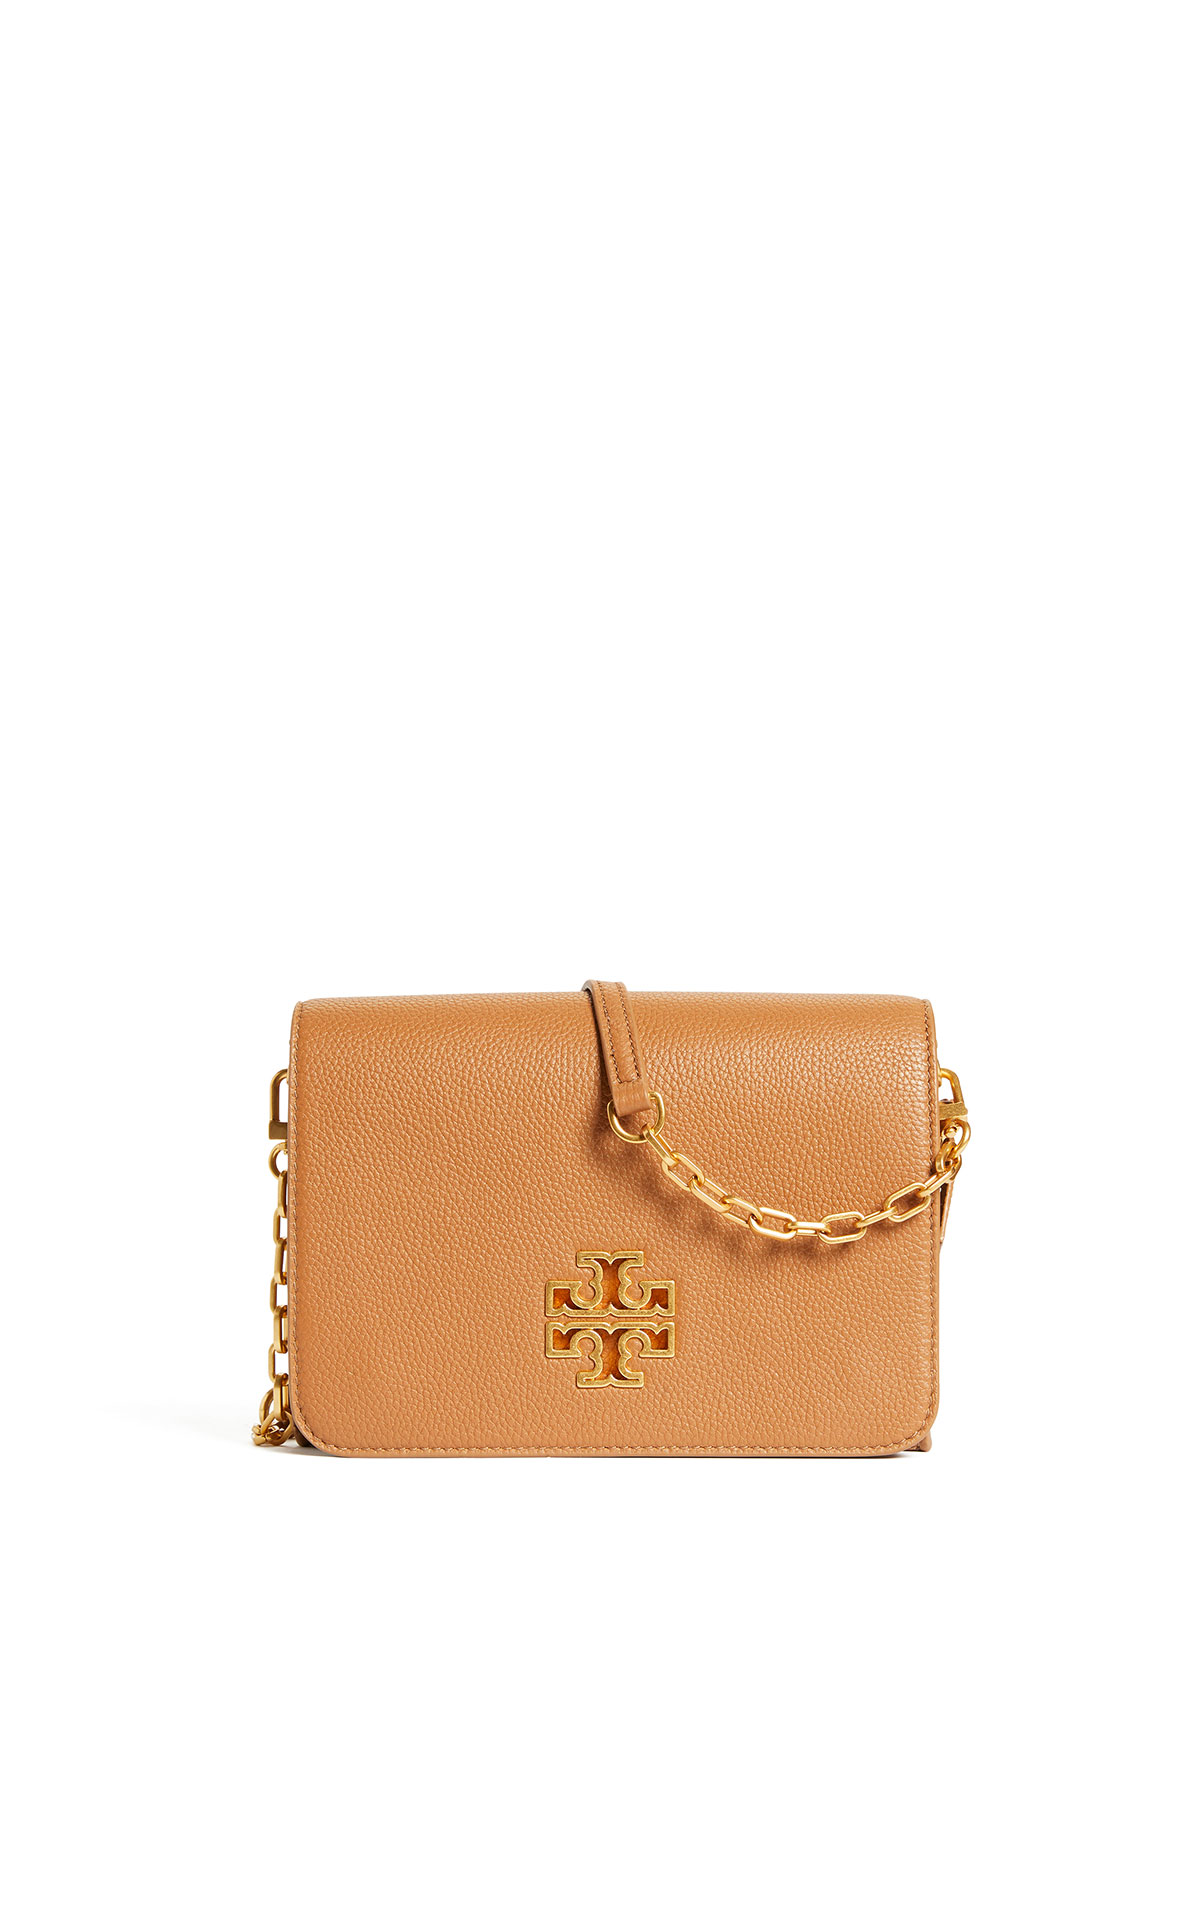 Tory Burch Britten combo crossbody from Bicester Village